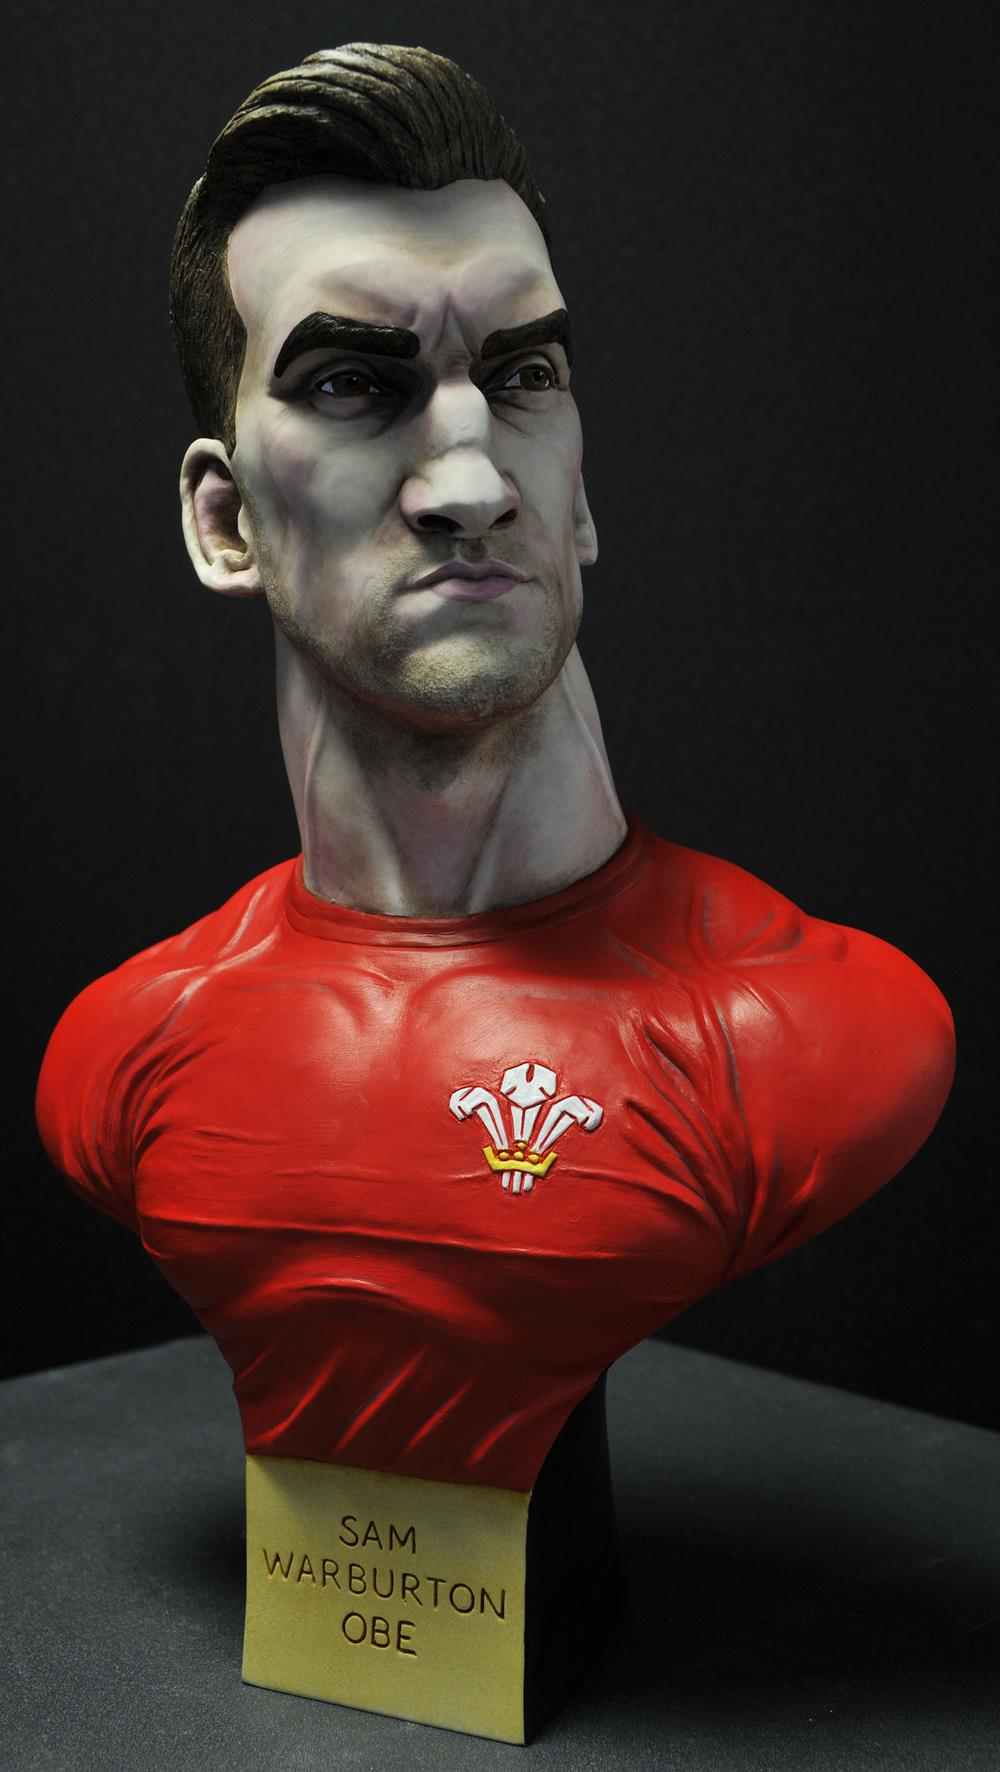 Sam Warburton Wales Bust *6-8 week delay*